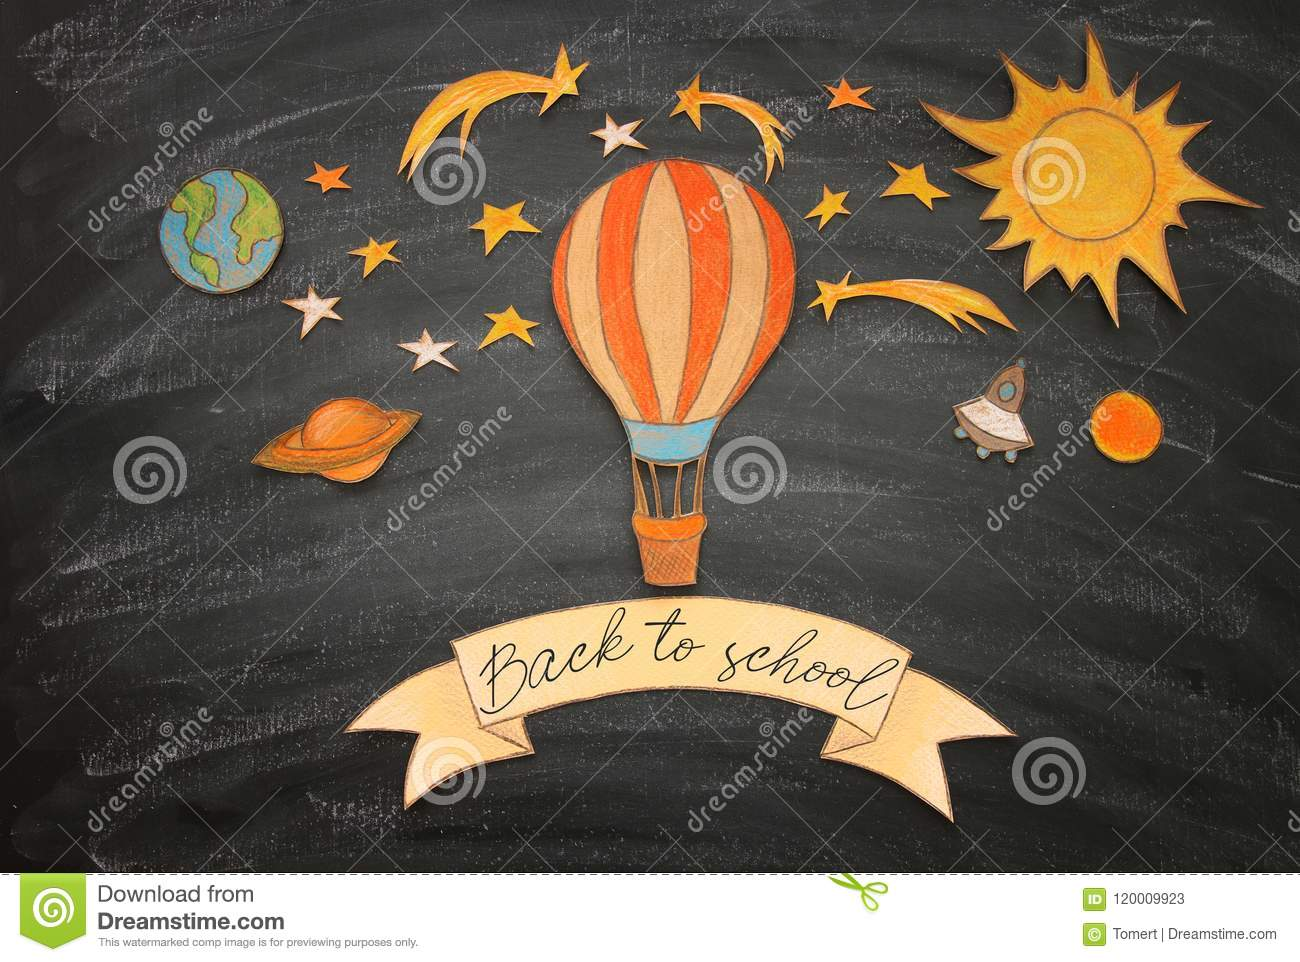 Back to school concept. Hot air balloon, space elements shapes cut from paper and painted over classroom blackboard background.